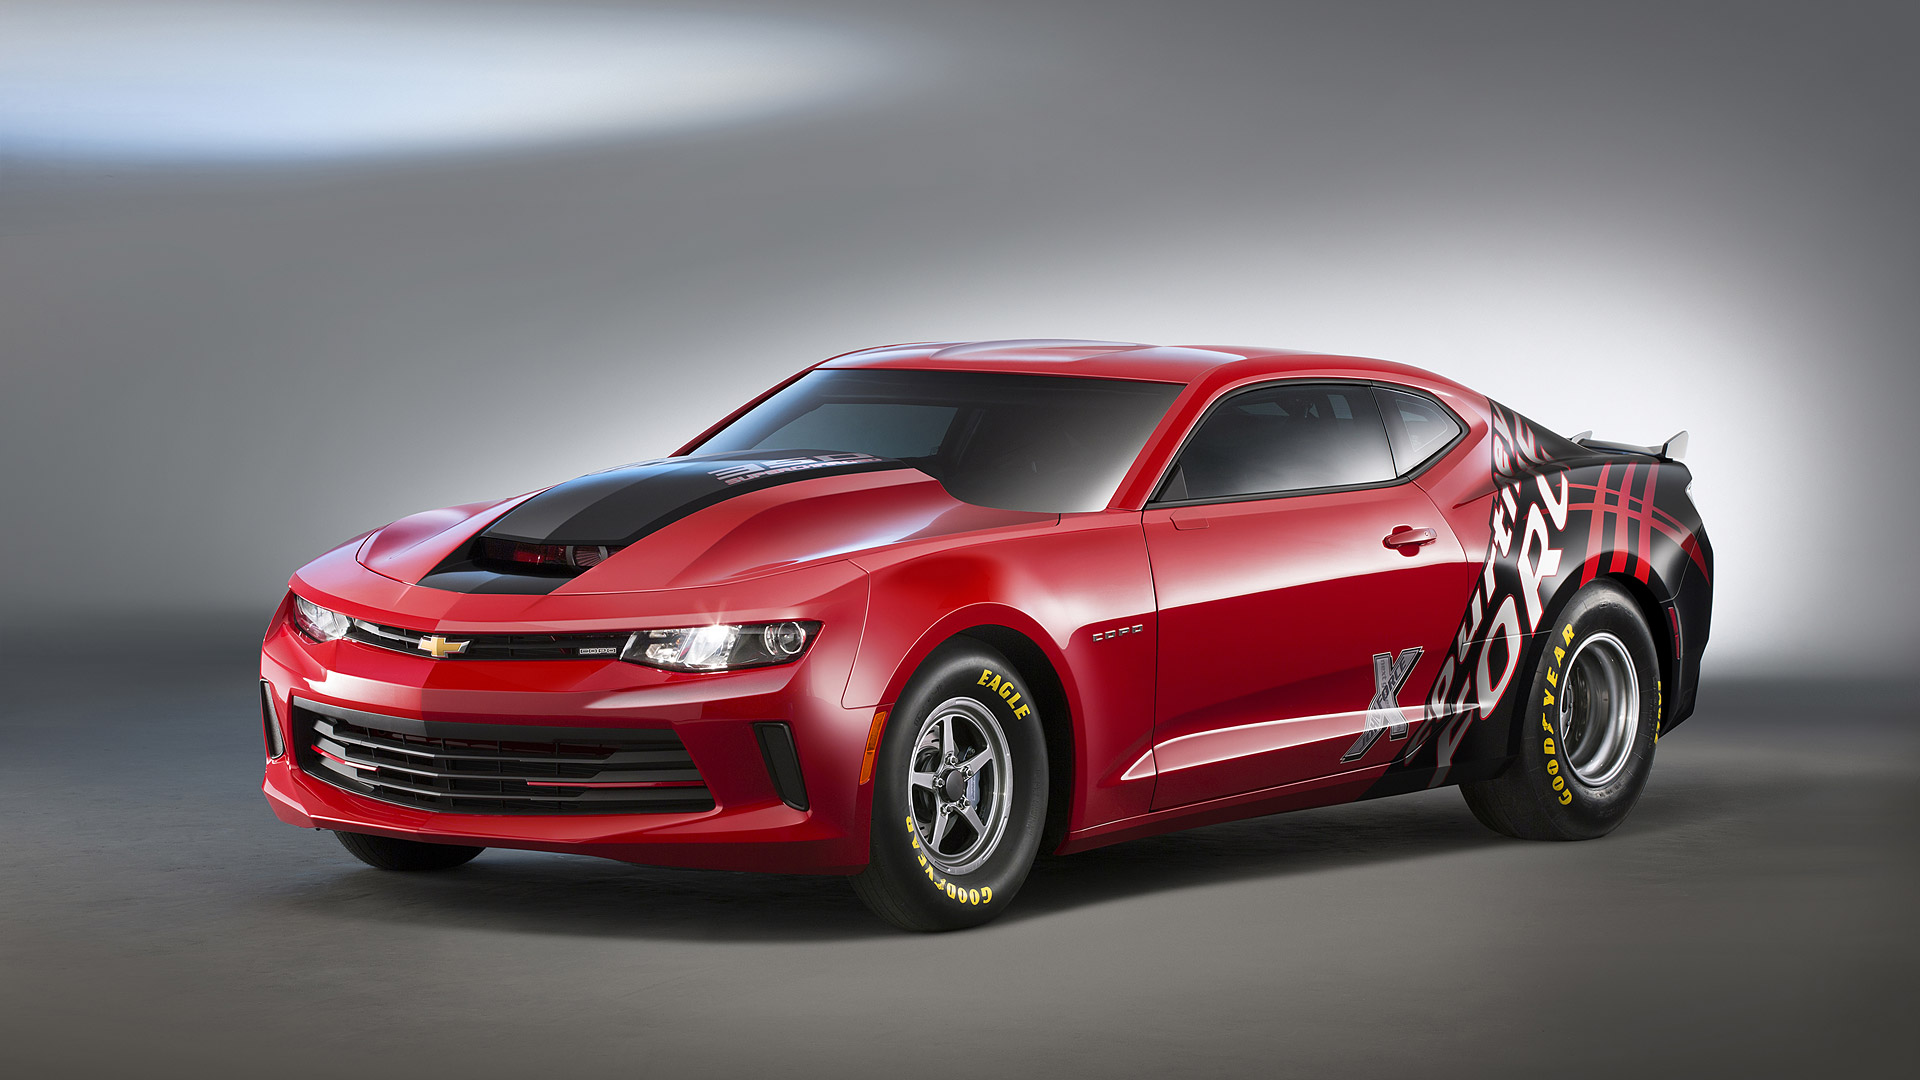 2016 Chevrolet COPO Camaro Wallpapers 1920x1080